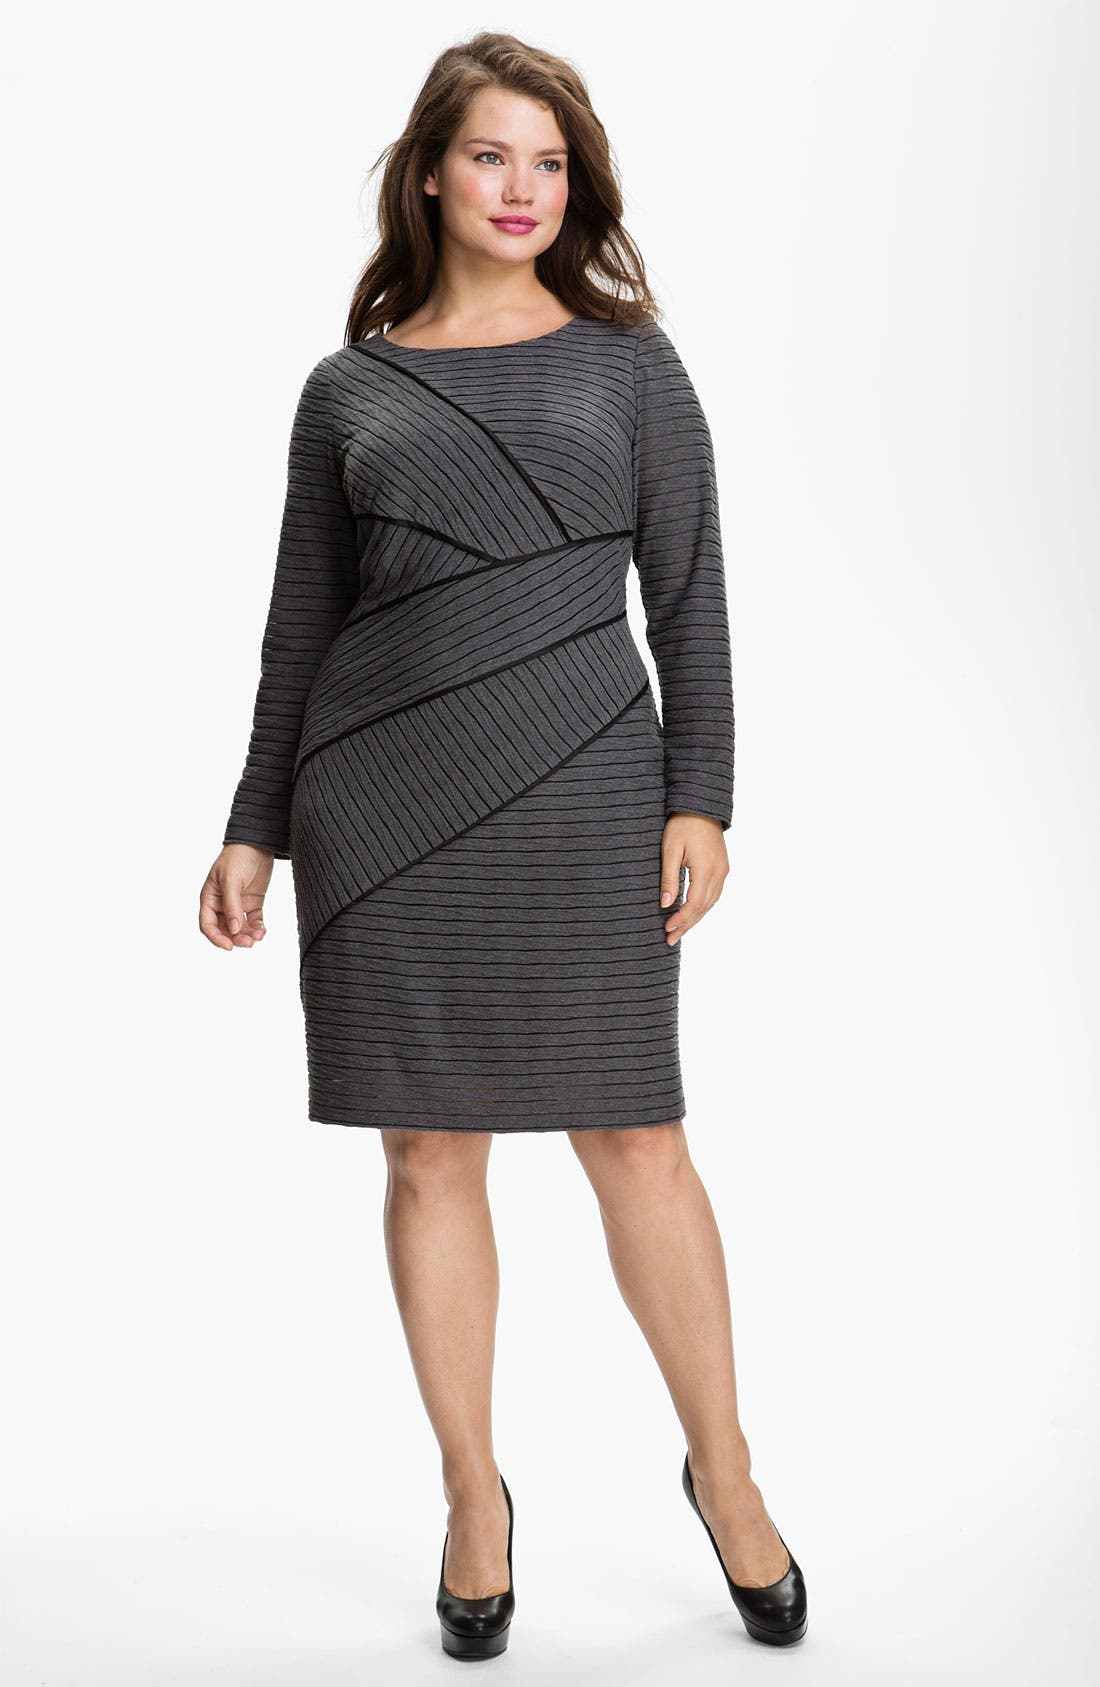 Alternate Image 1 Selected - Adrianna Papell Asymmetric Seamed Sheath Dress (Plus)